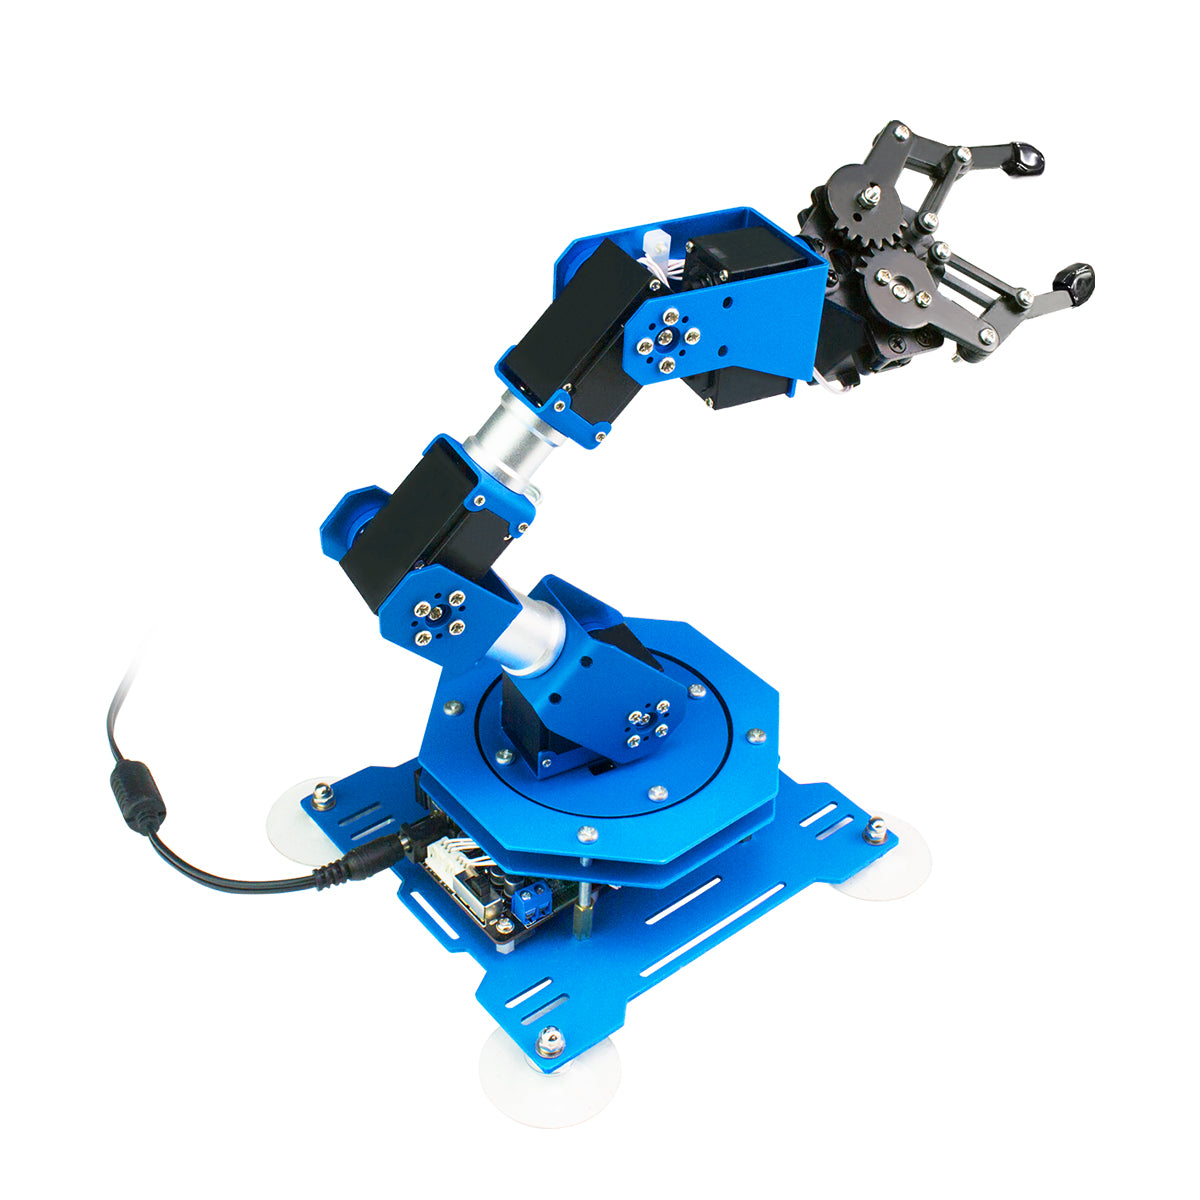 xArm: Hiwonder 6DOF Bus Servo Programming Robotic Arm